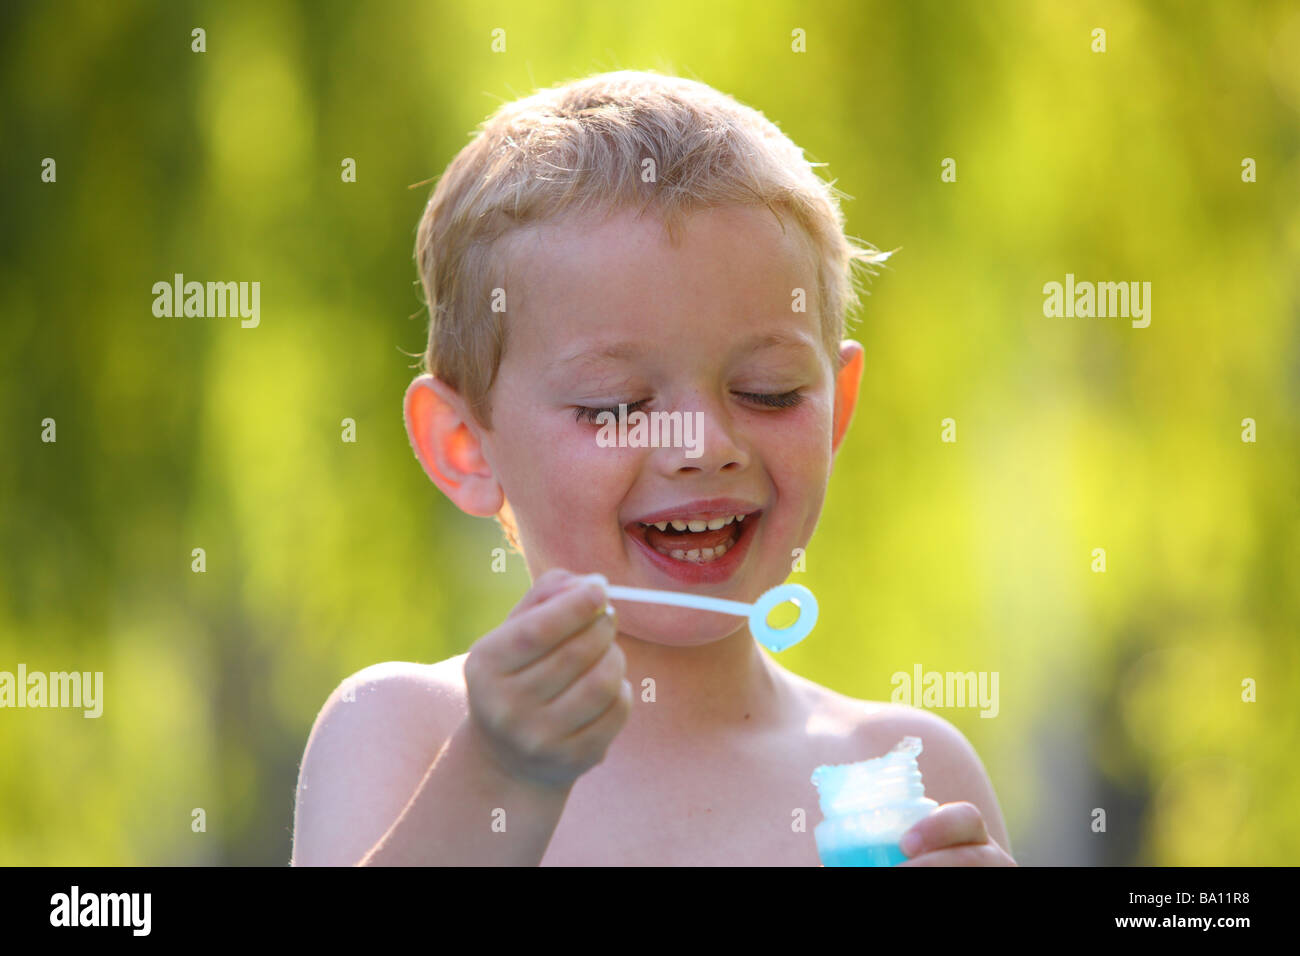 Young boy outside with bubble wand - Stock Image